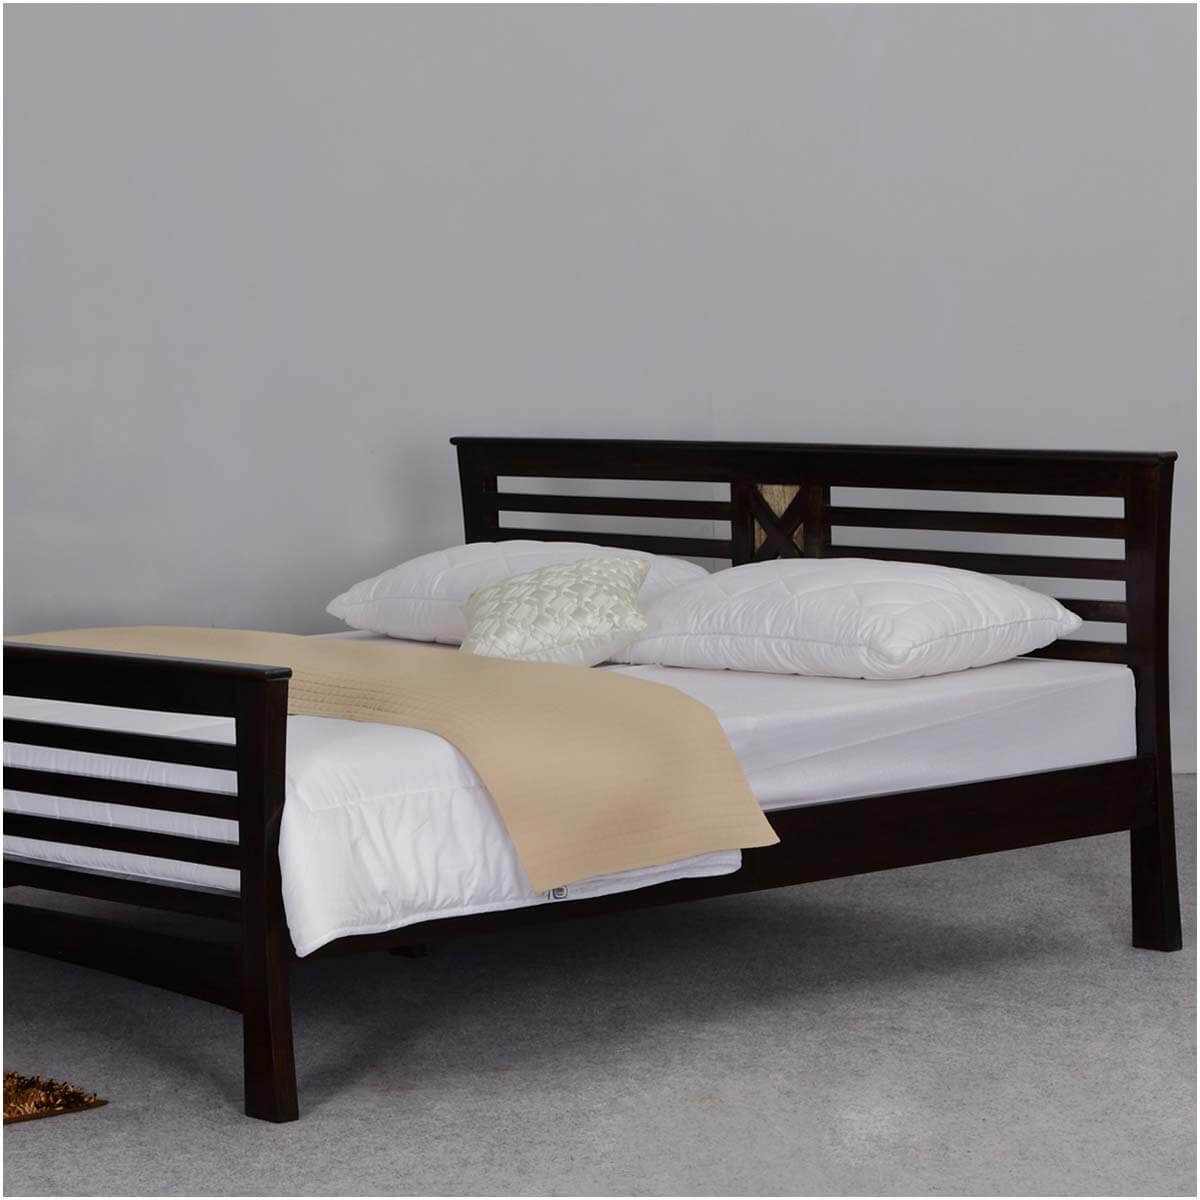 Texas solid wood queen size platform bed frame w headboard for Queen bed frame